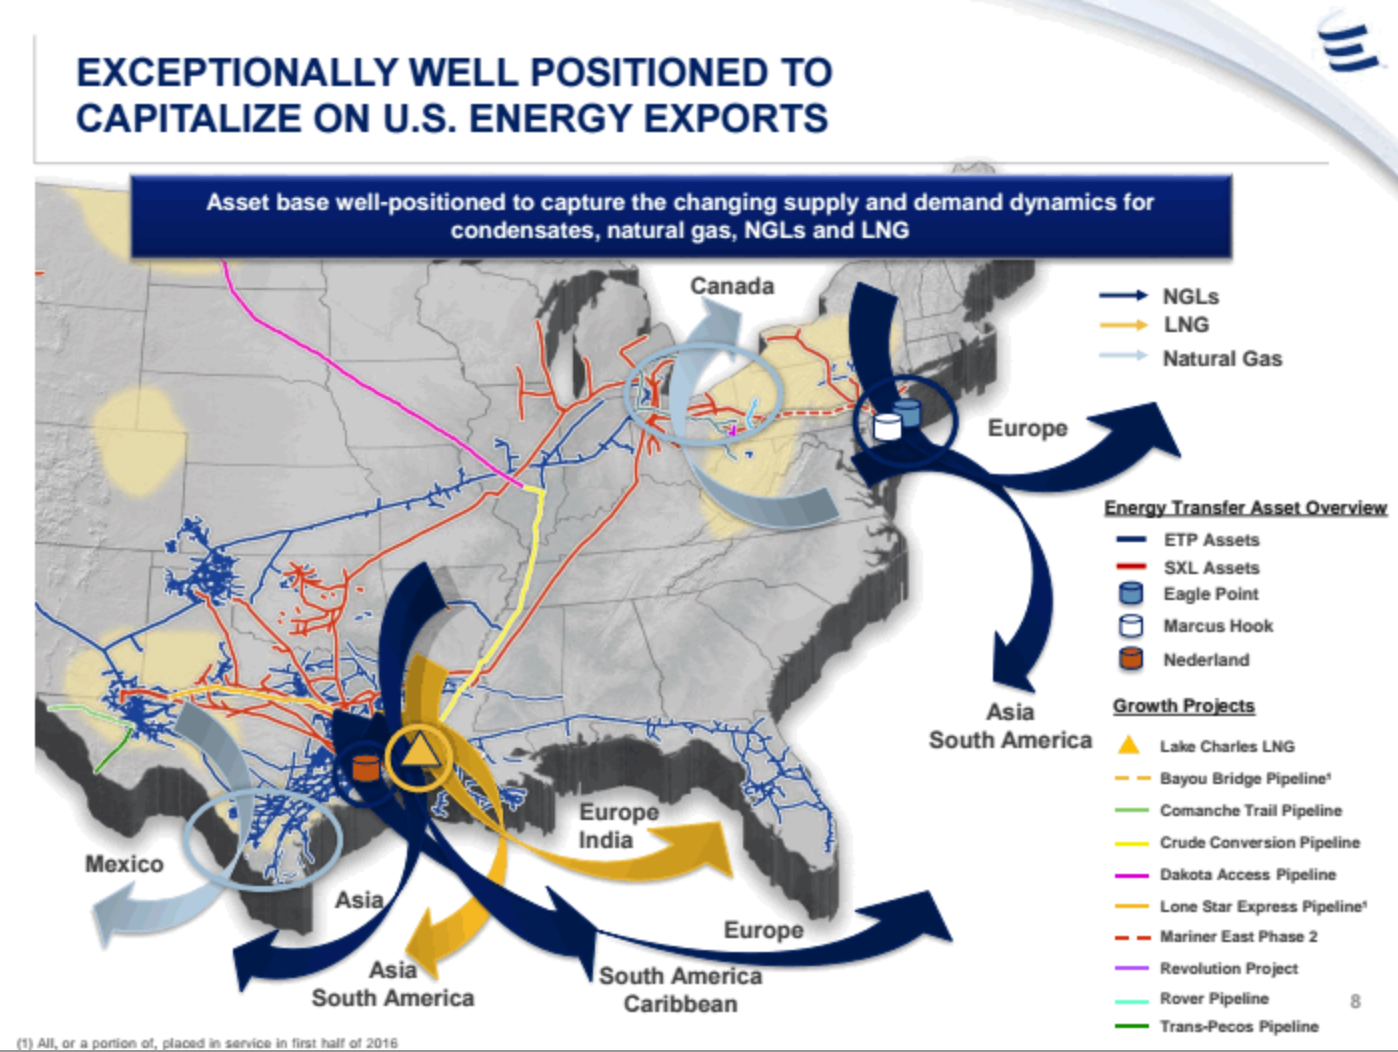 Dakota Access Pipeline DAPL is excited to explore foreign oil export options!